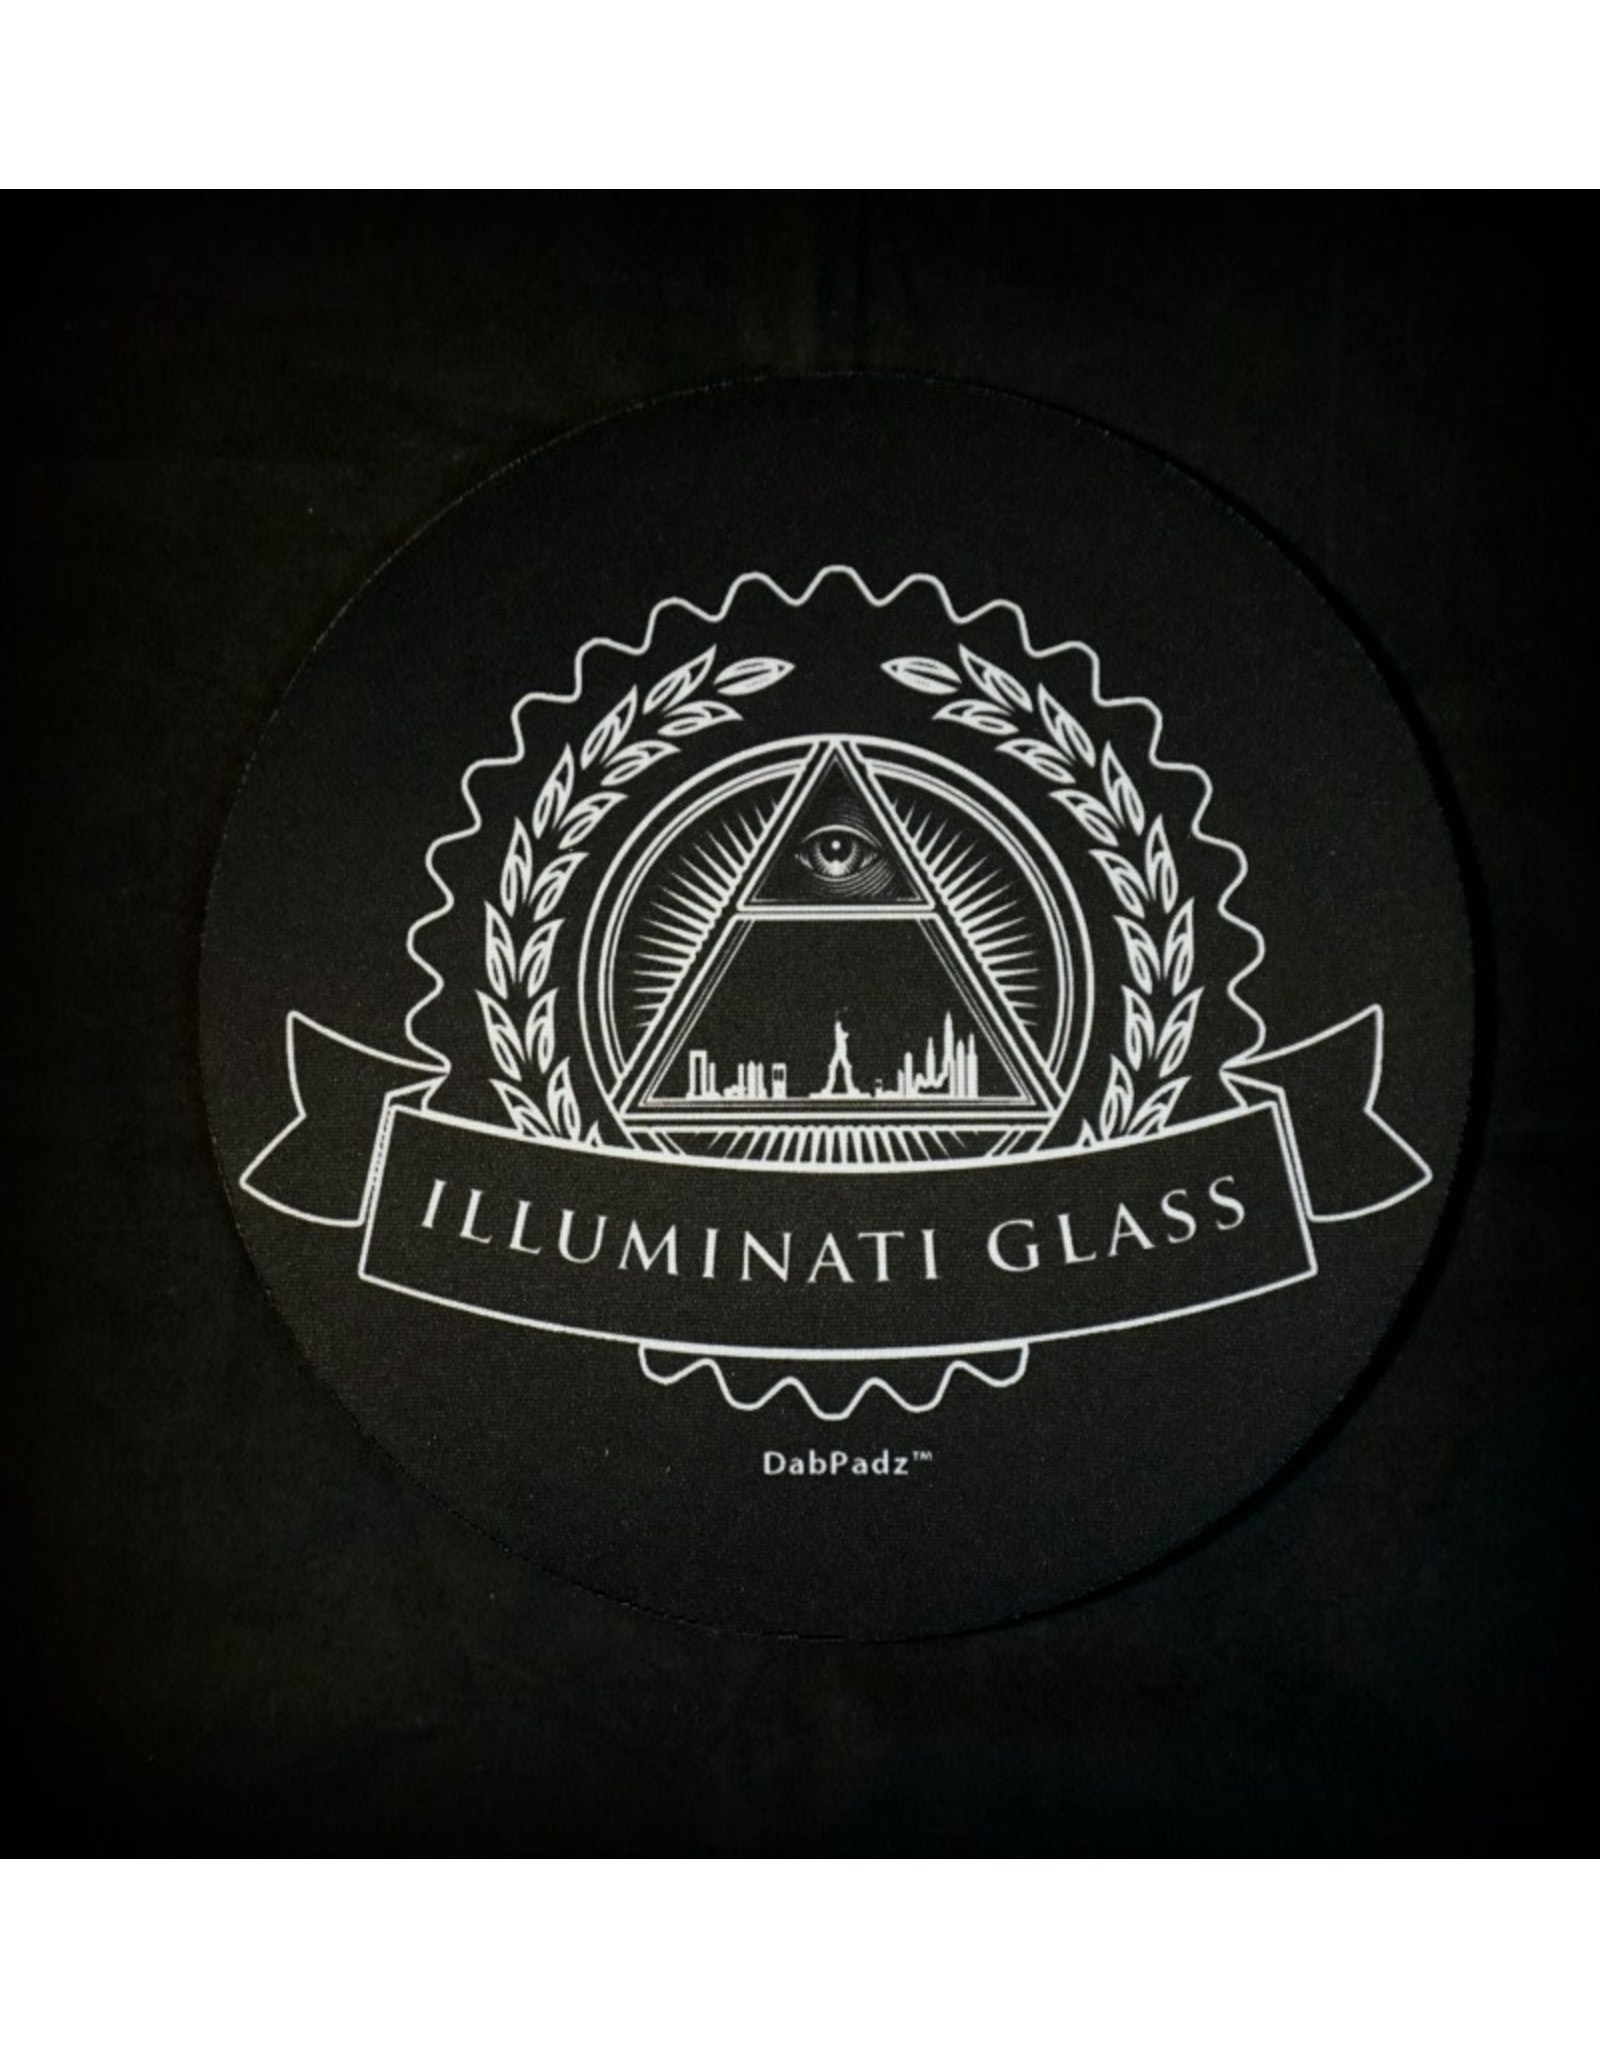 Illuminati Glass Dab Pad